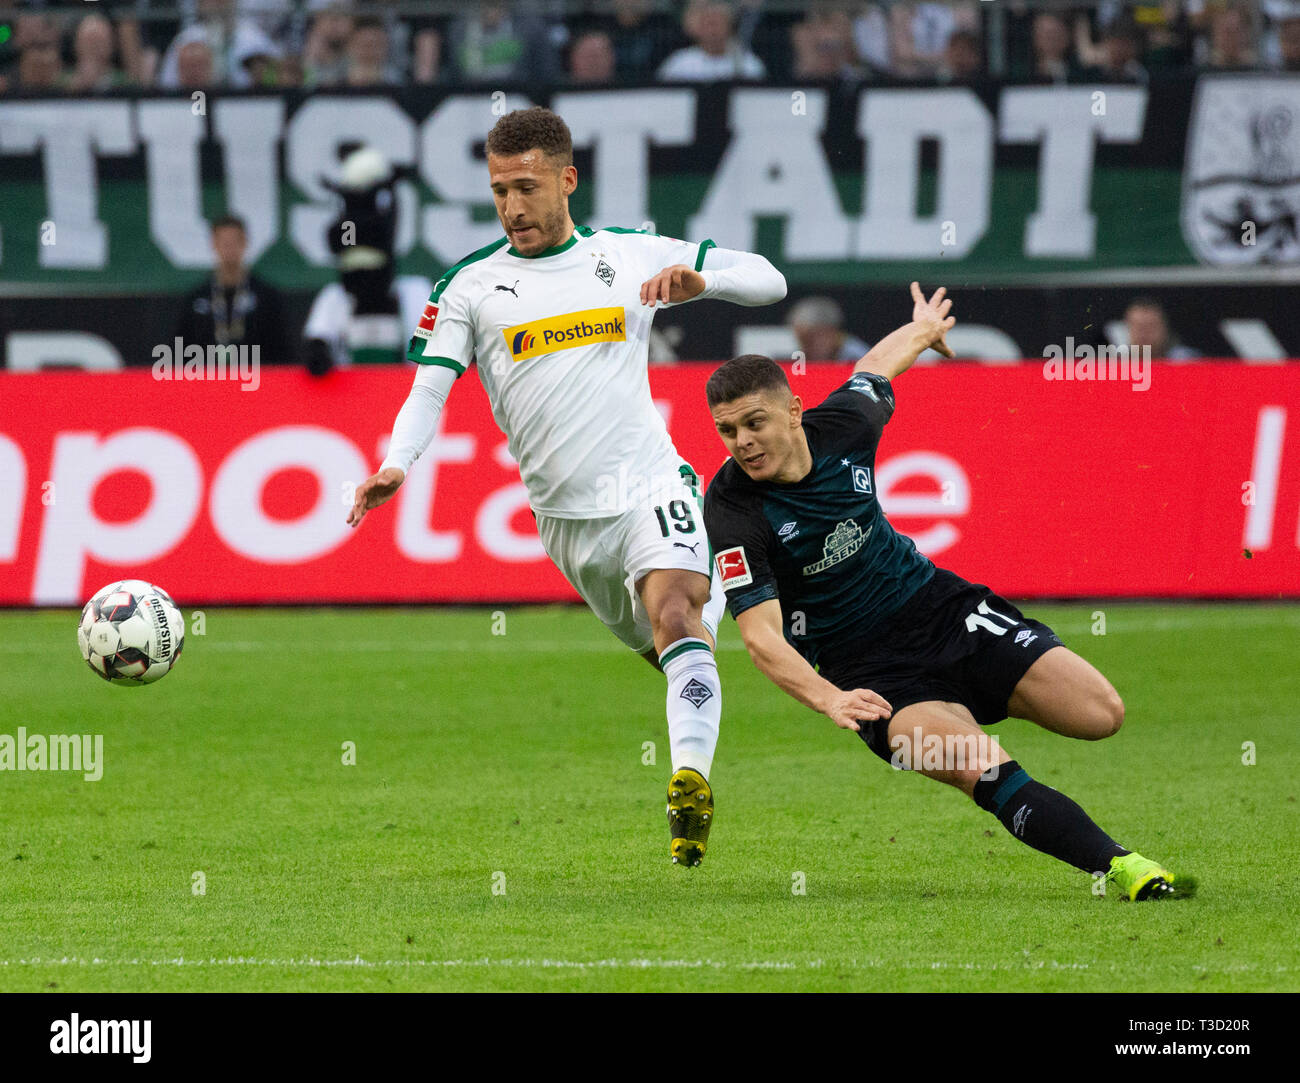 sports, football, Bundesliga, 2018/2019, Borussia Moenchengladbach vs SV Werder Bremen 1-1, Stadium Borussia Park, scene of the match, Fabian Johnson (MG) left and Milot Rashica (Bremen), DFL REGULATIONS PROHIBIT ANY USE OF PHOTOGRAPHS AS IMAGE SEQUENCES AND/OR QUASI-VIDEO - Stock Image